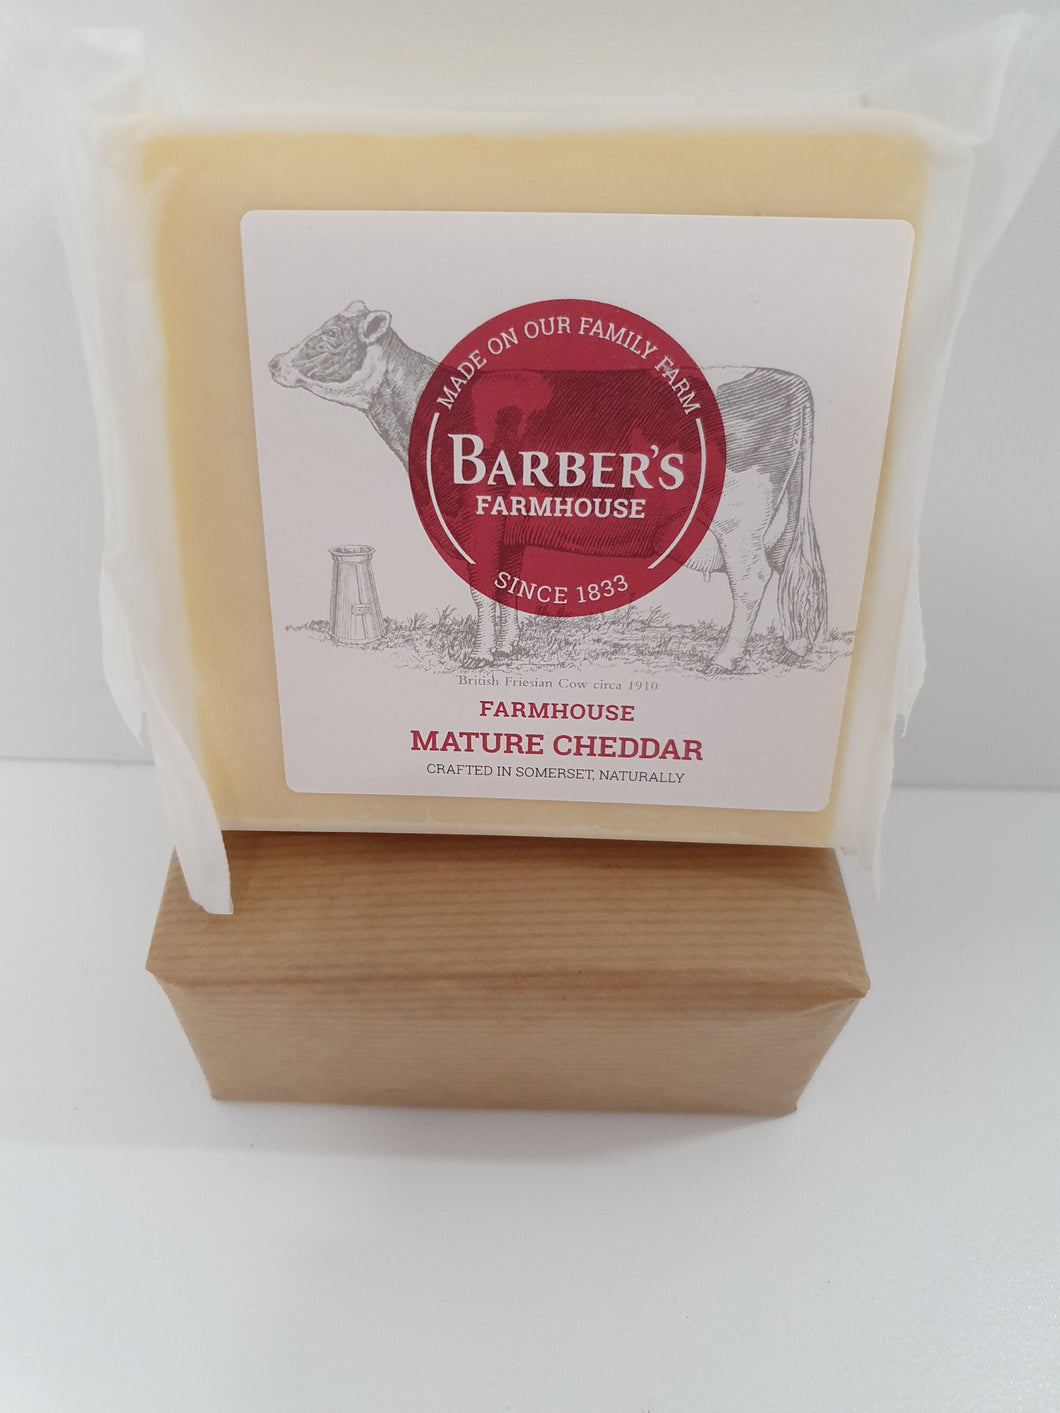 Barbers Farmhouse Mature Cheddar 200g